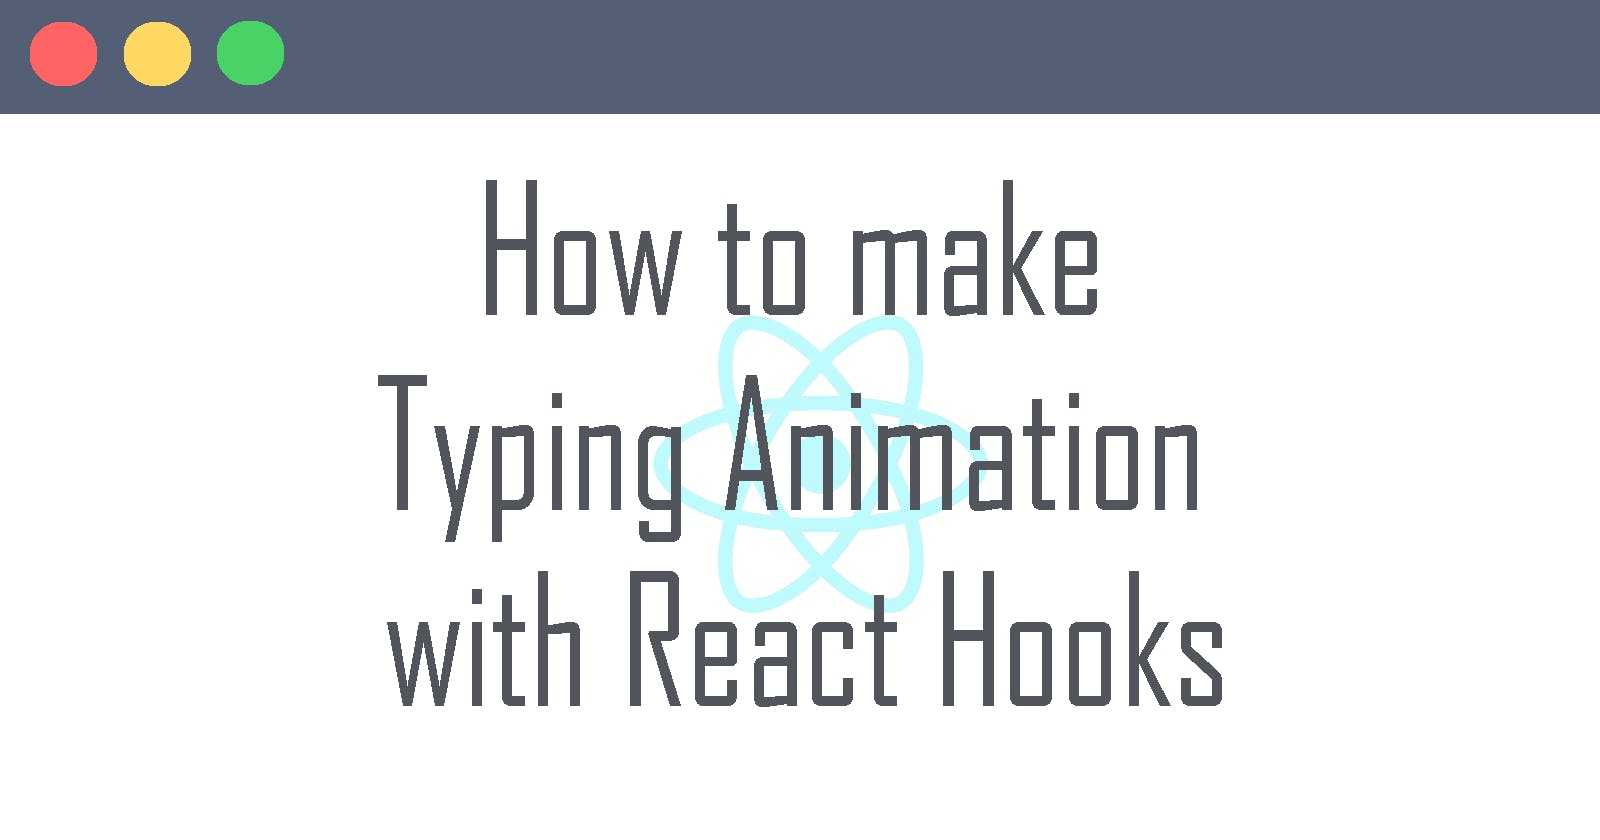 Making Typing Animation with React Hooks